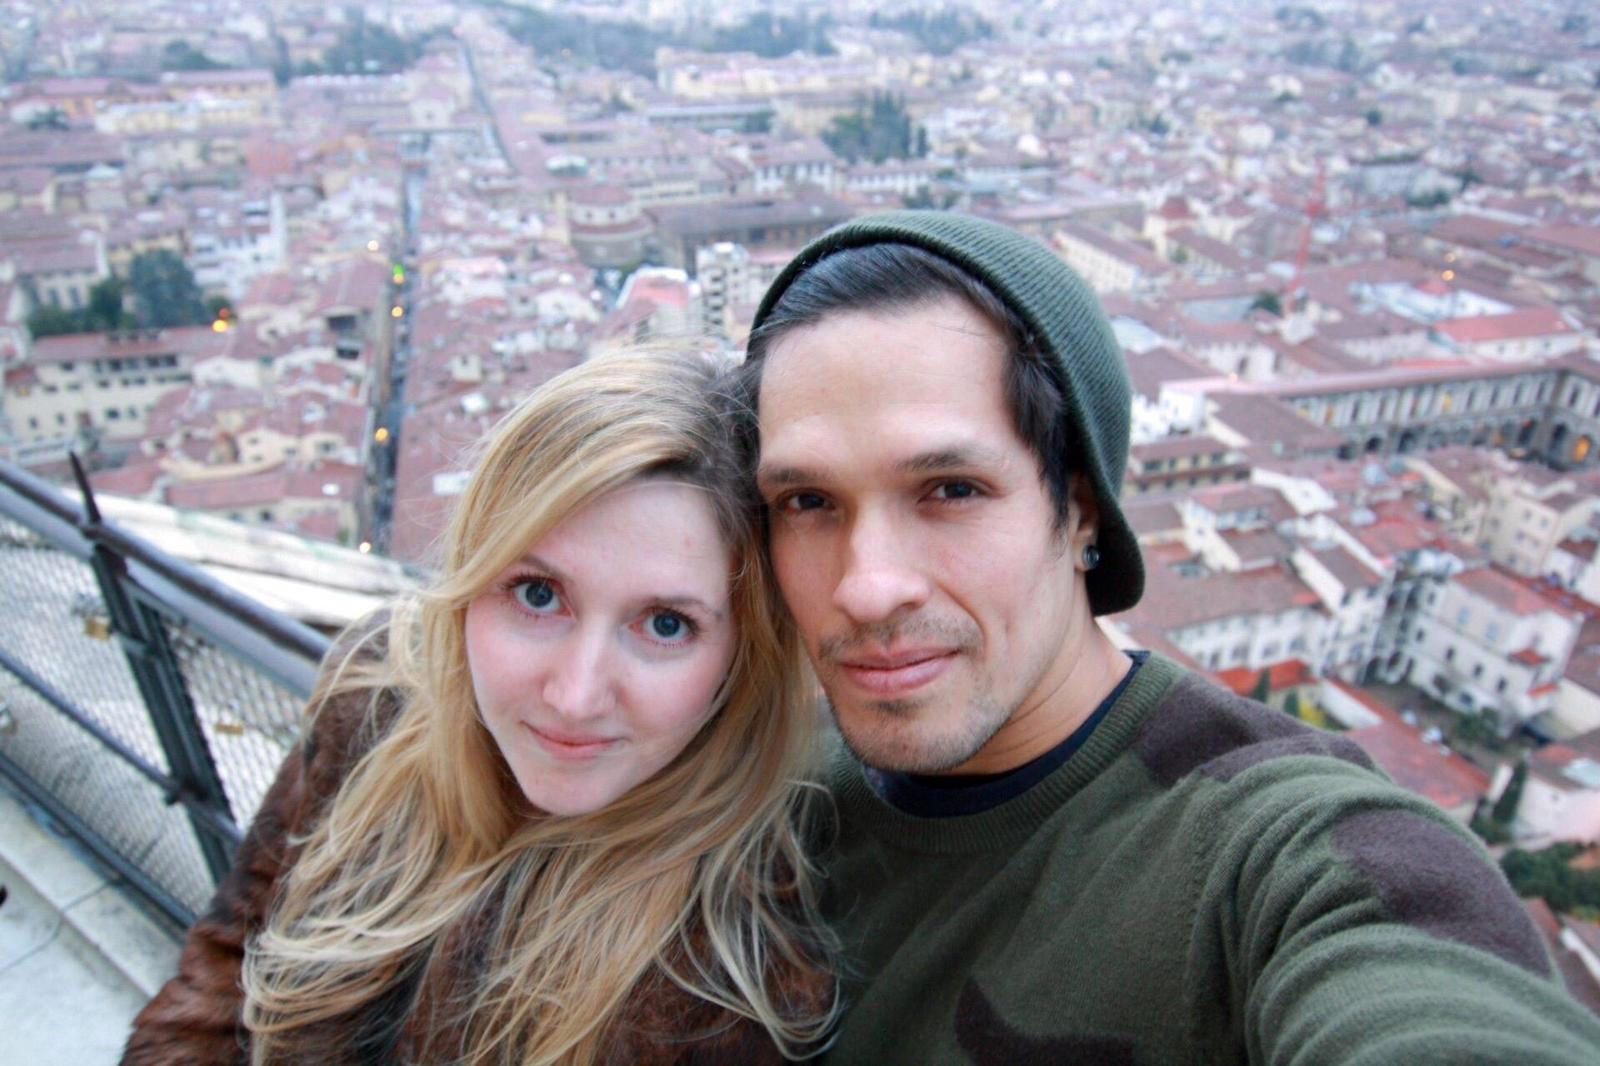 Caia Daly, 37 (L), is stuck in Peru with her husband Carlos Abisrror (R) and two young children, one of whom has pneumonia